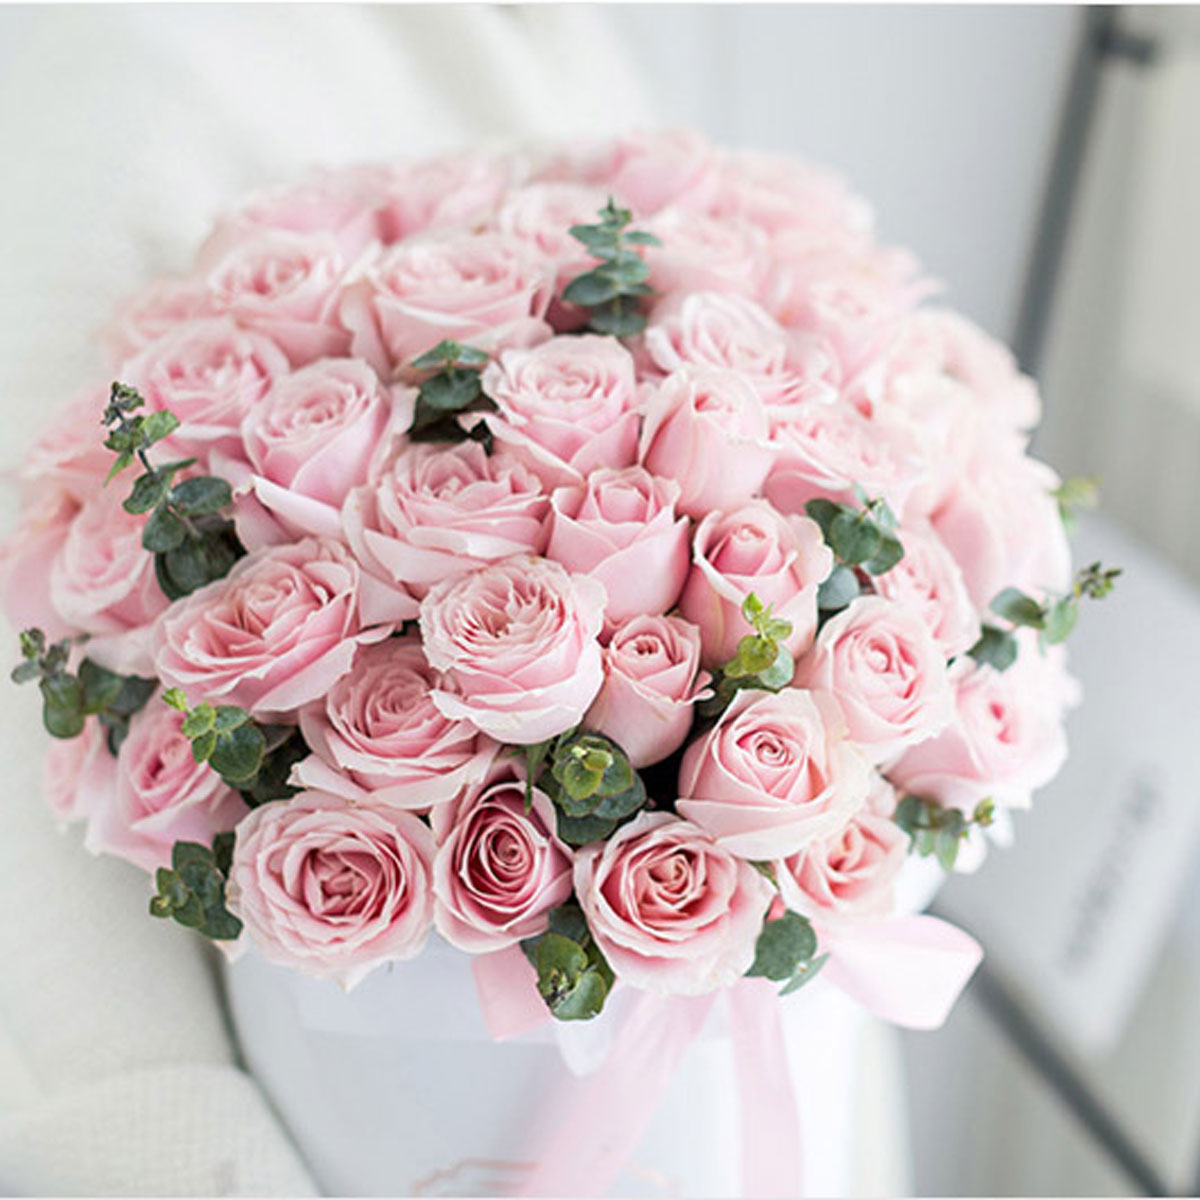 Large bouquet of 52 premium pink roses arranged in a cylinder gift box